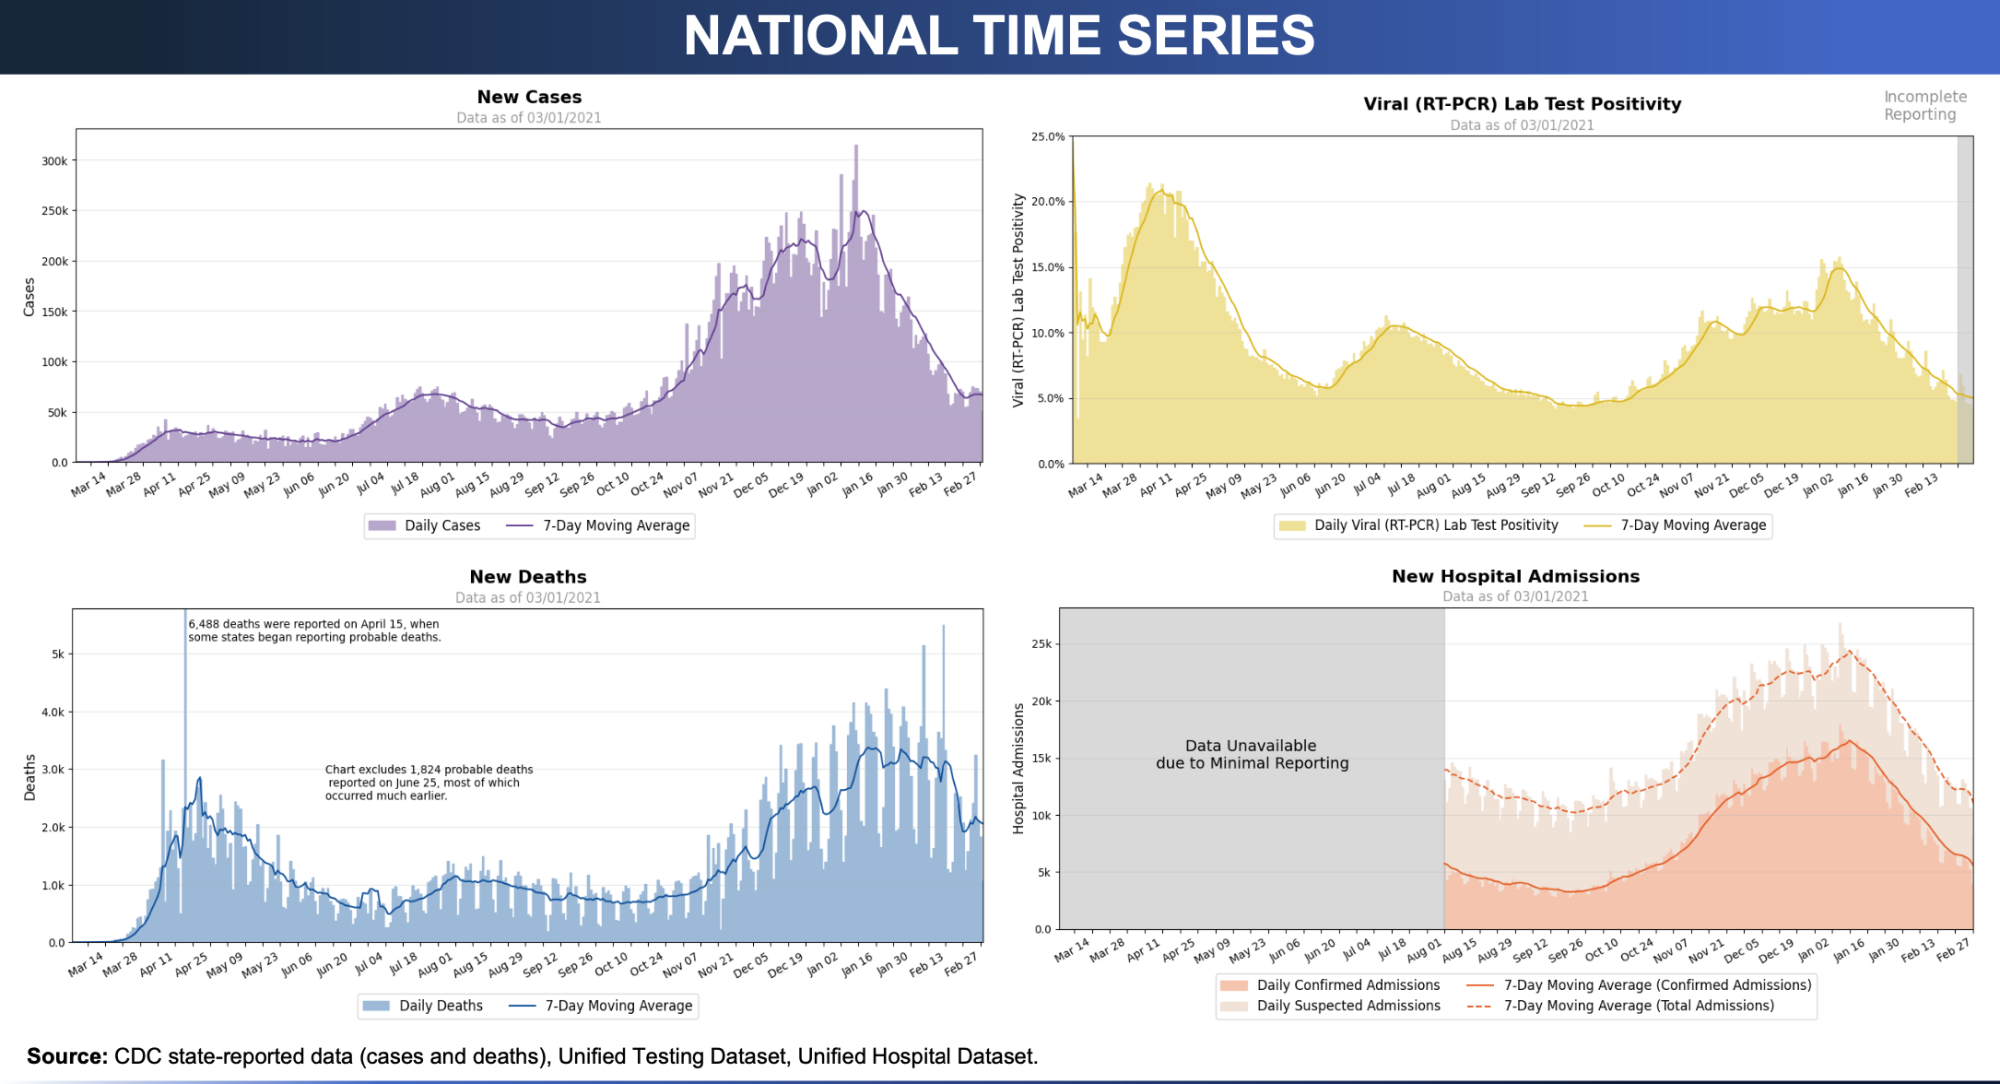 Four-panel chart from the federal Community Profile Reports in which each panel charts a time series of COVID-19 data: Daily Cases, Daily Test Positivity, Daily Deaths, and Daily Hospital Admissions (confirmed and suspected).